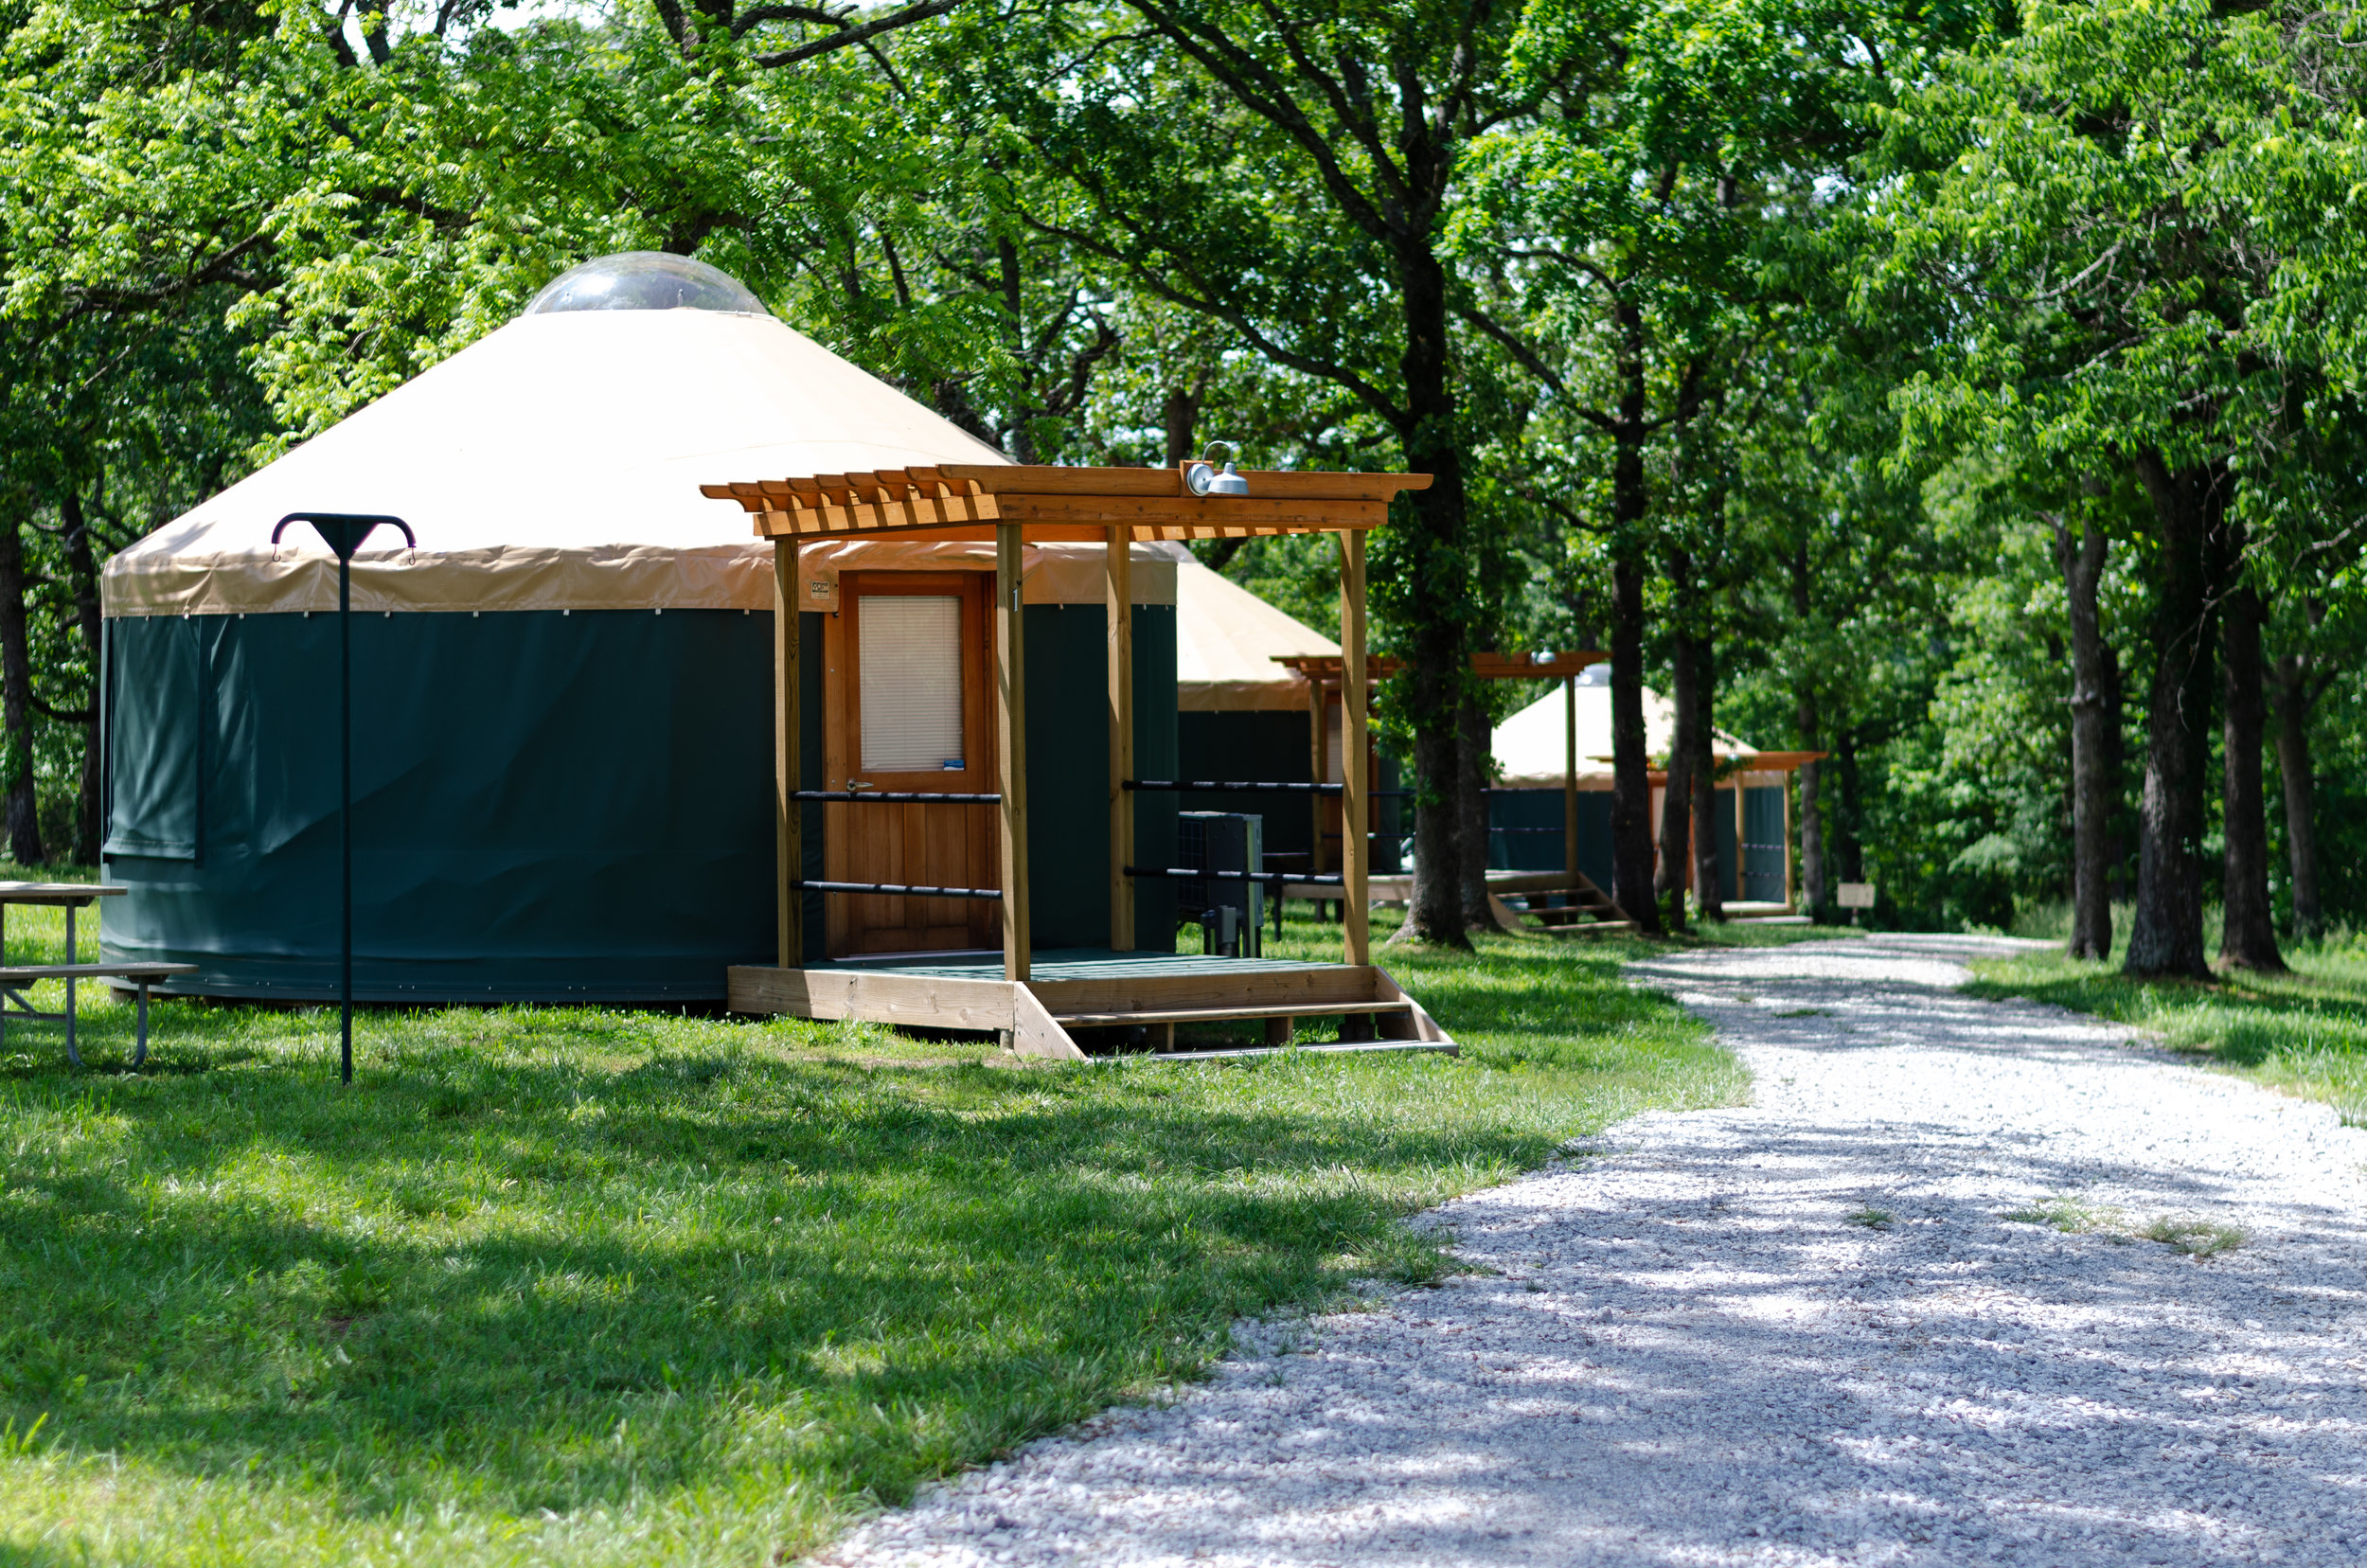 The park opened several yurts last year.